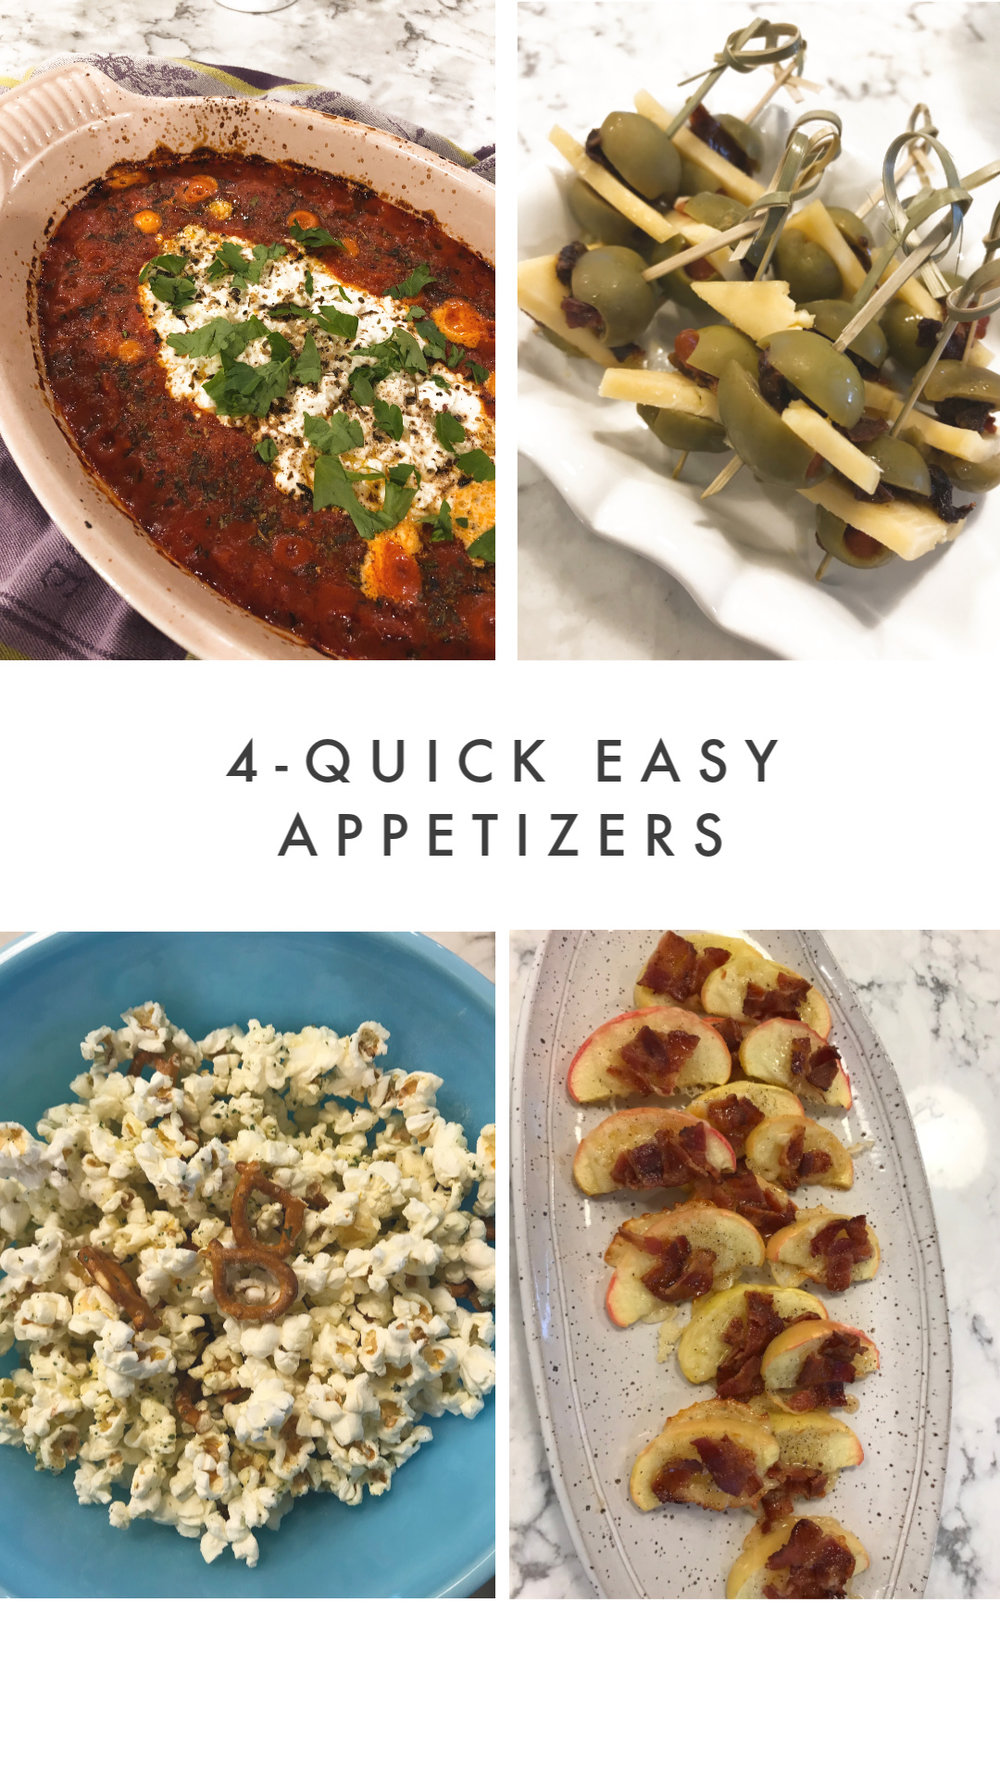 Quick and Easy appetizers